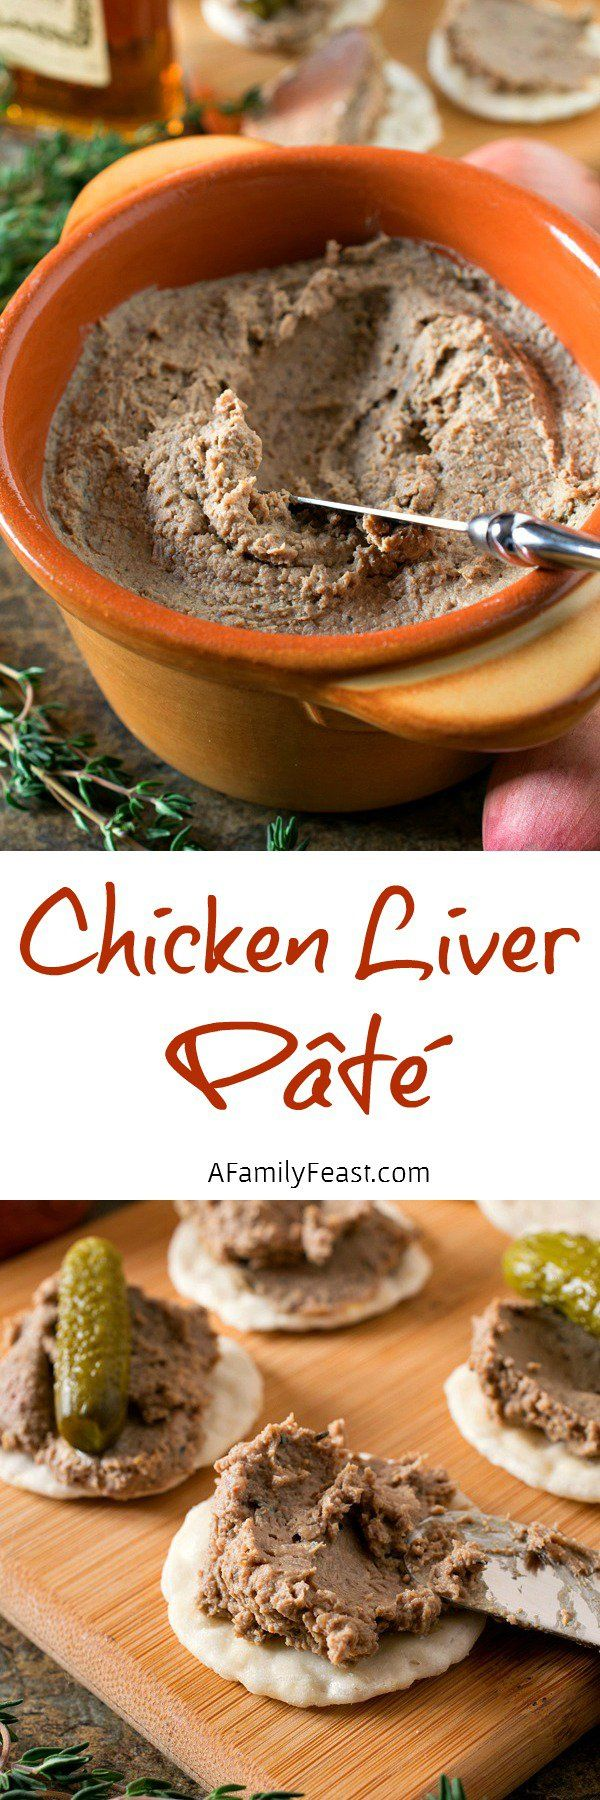 Recipe for easy chicken liver pate